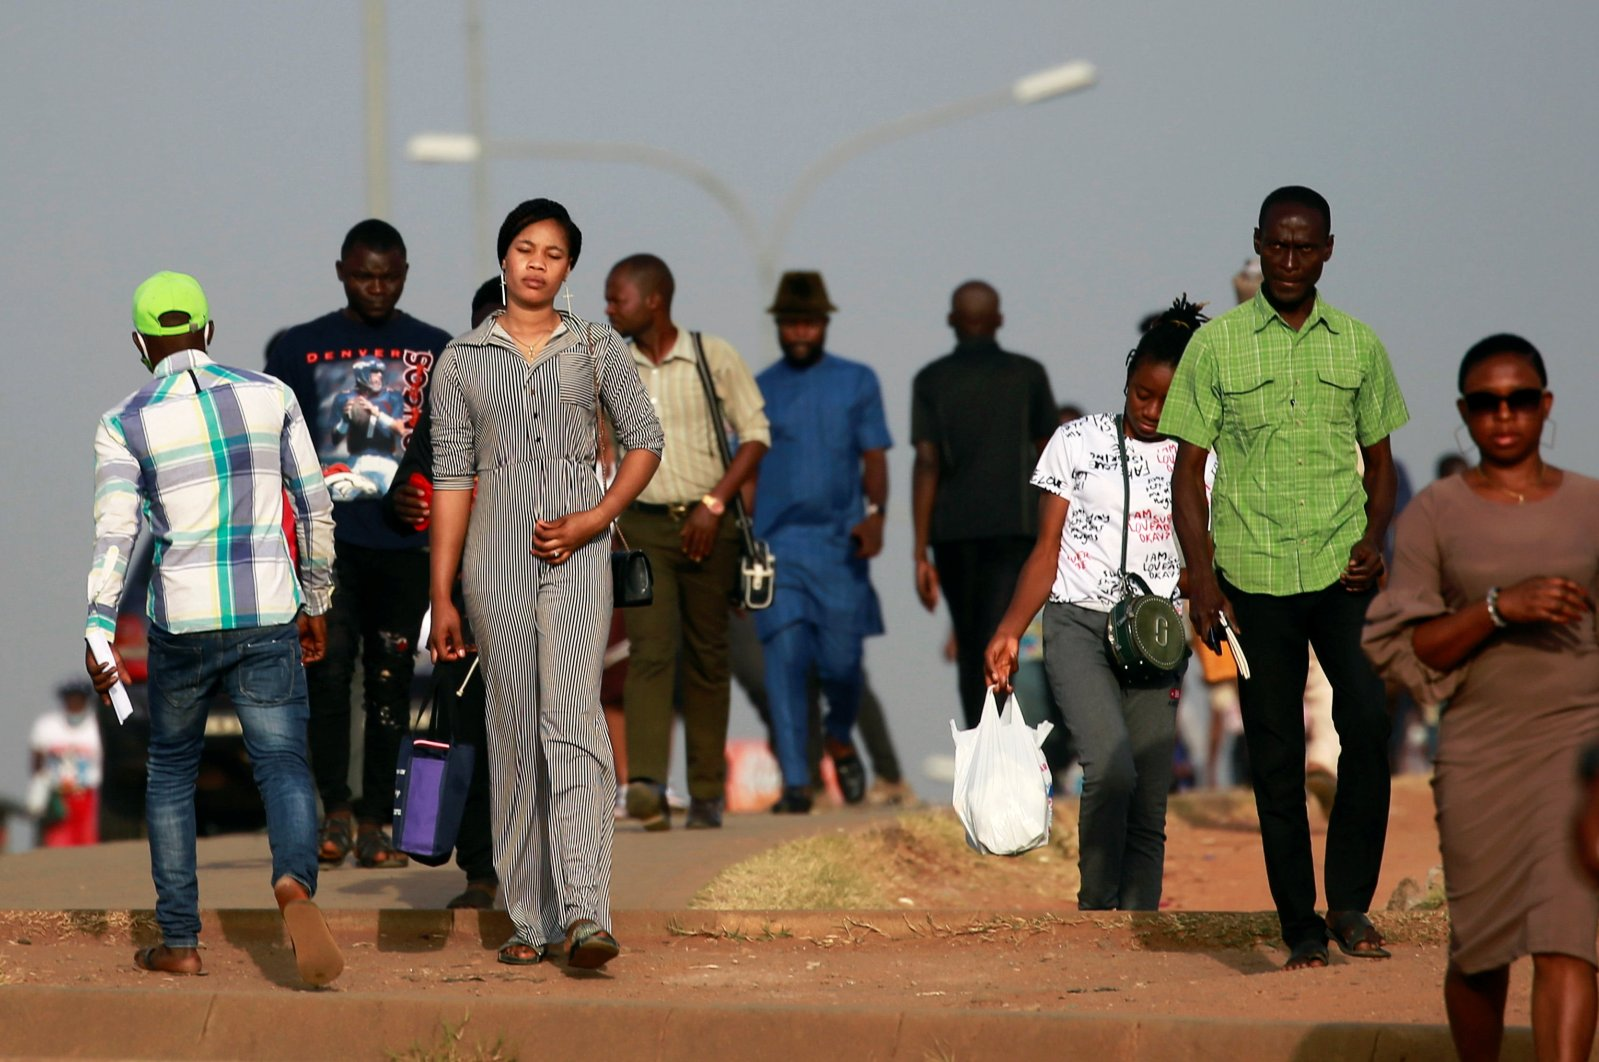 People walk as they head to work at Banex area in Abuja, Nigeria, Nov. 23, 2020. (Reuters Photo)